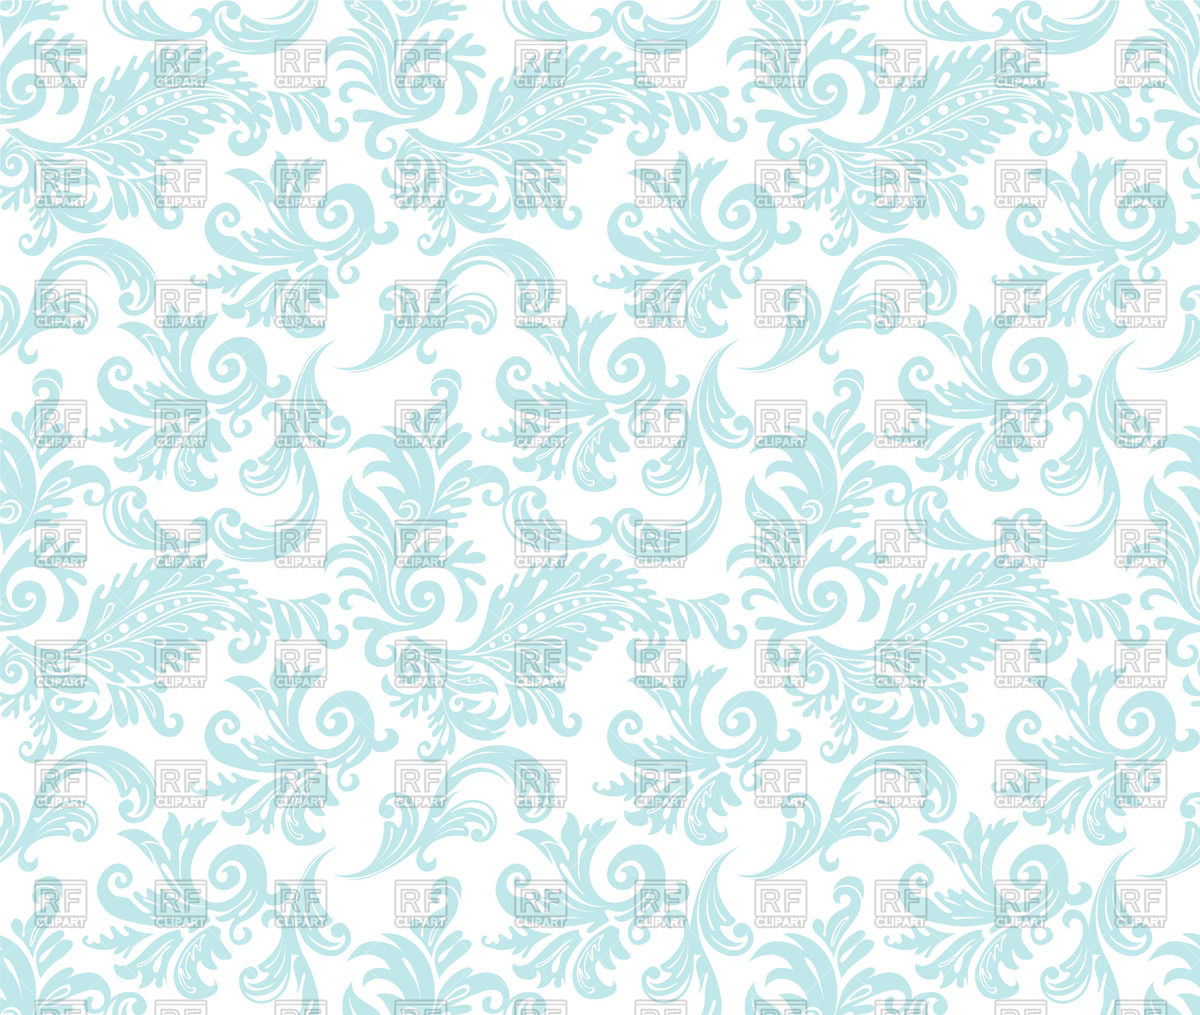 Blue damask seamless wallpaper Vector Image #58940.